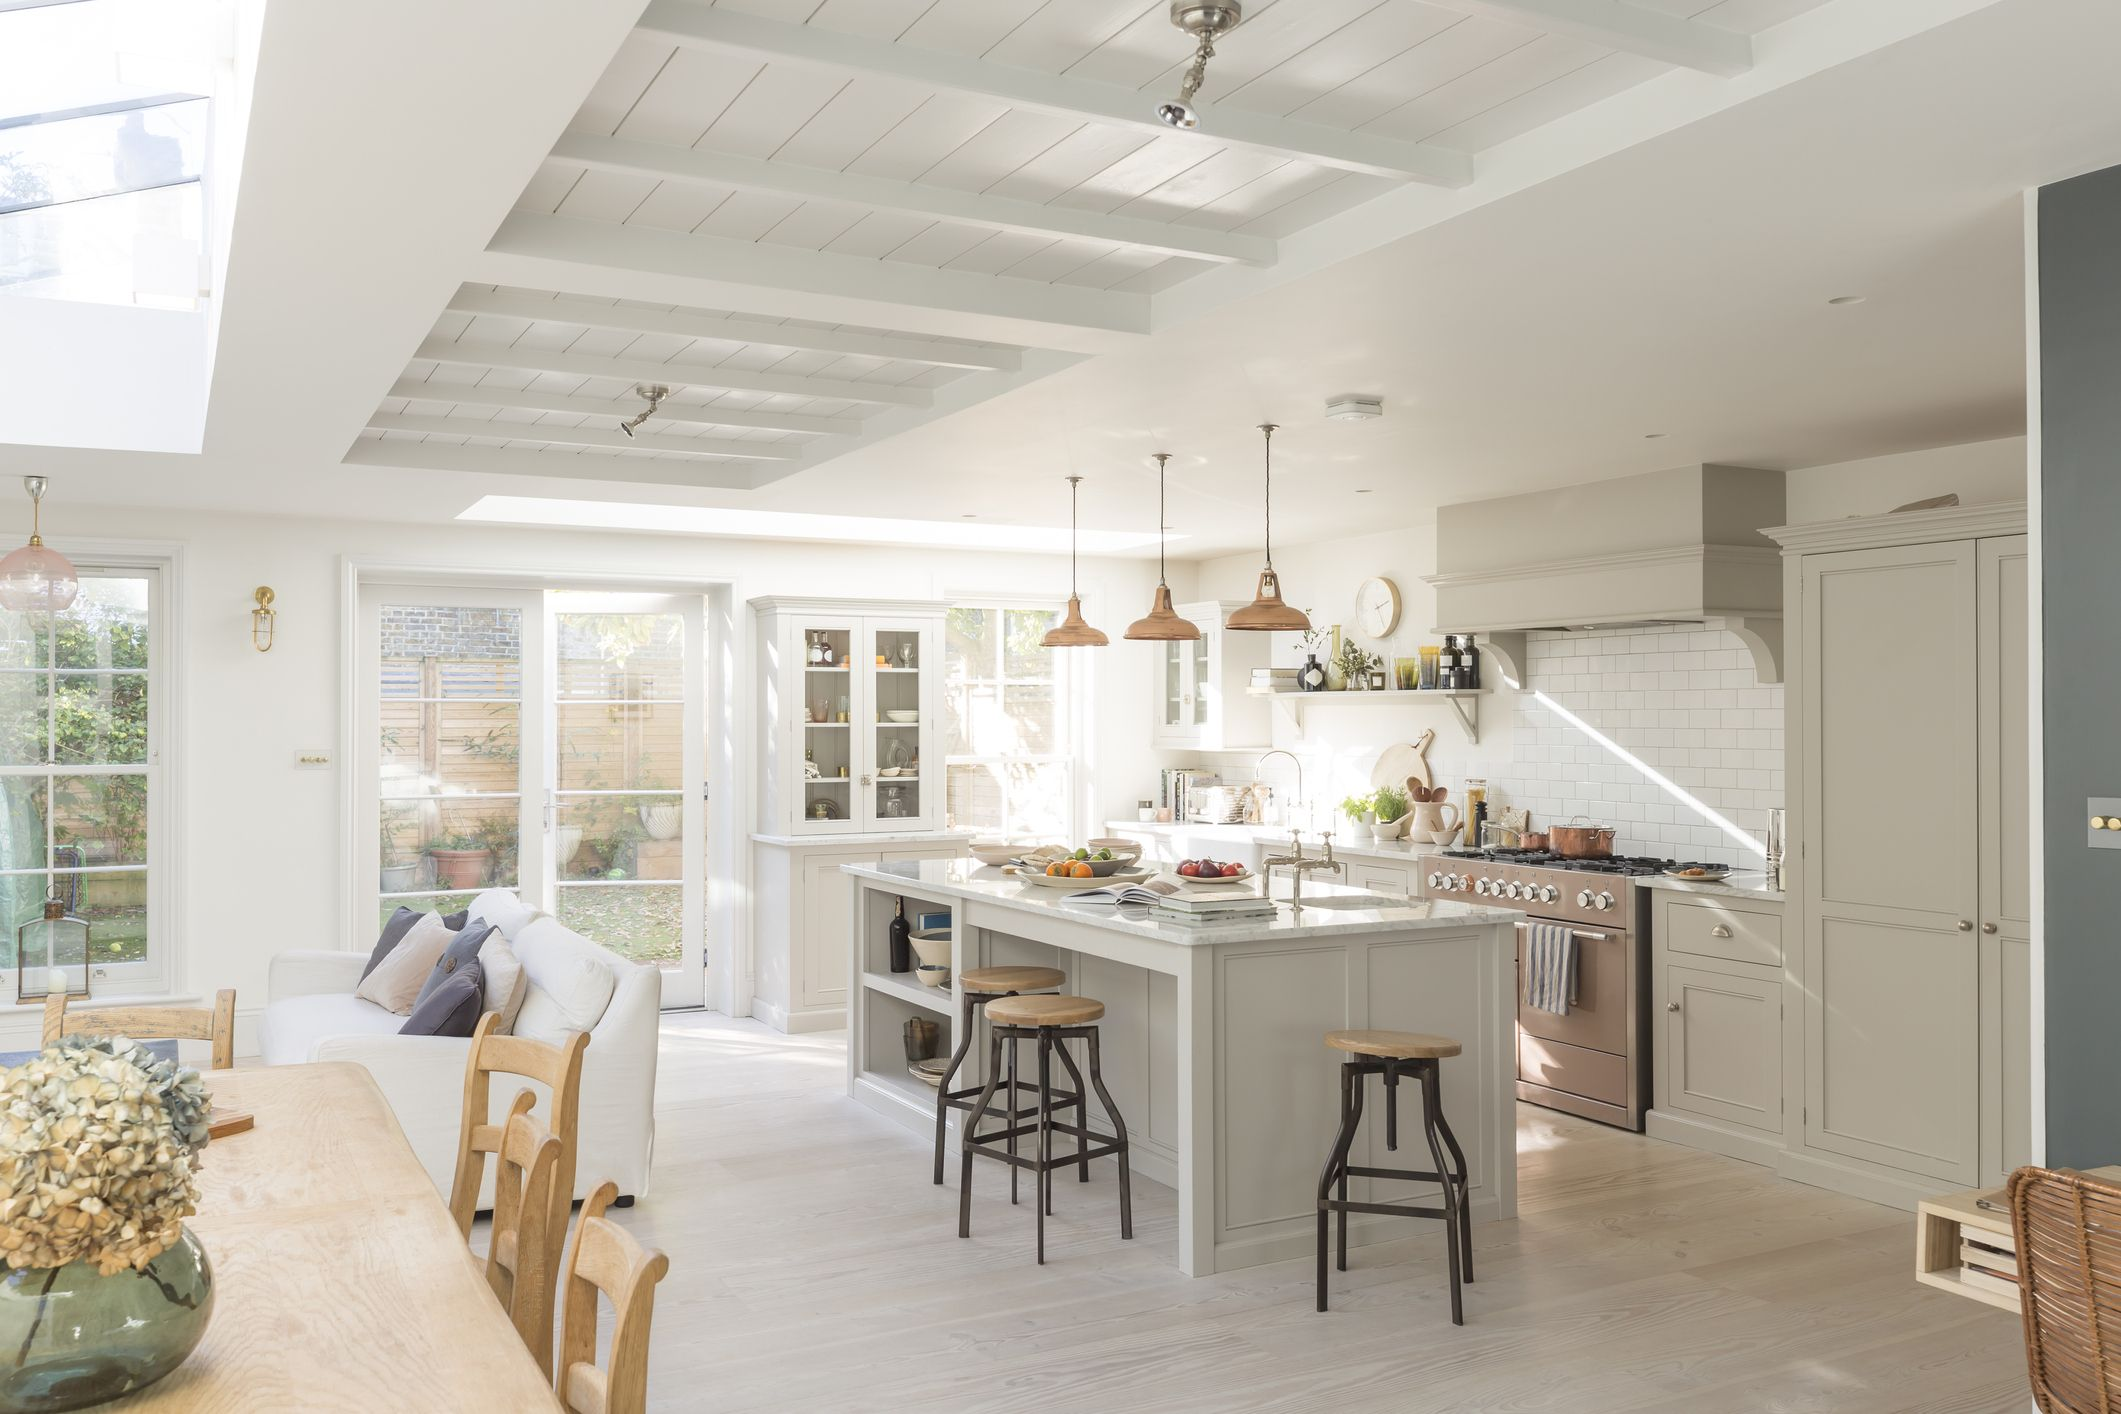 Country Living Magazine & The 10 Best White Kitchen Cabinet Paint Colors for a Clean Airy Vibe